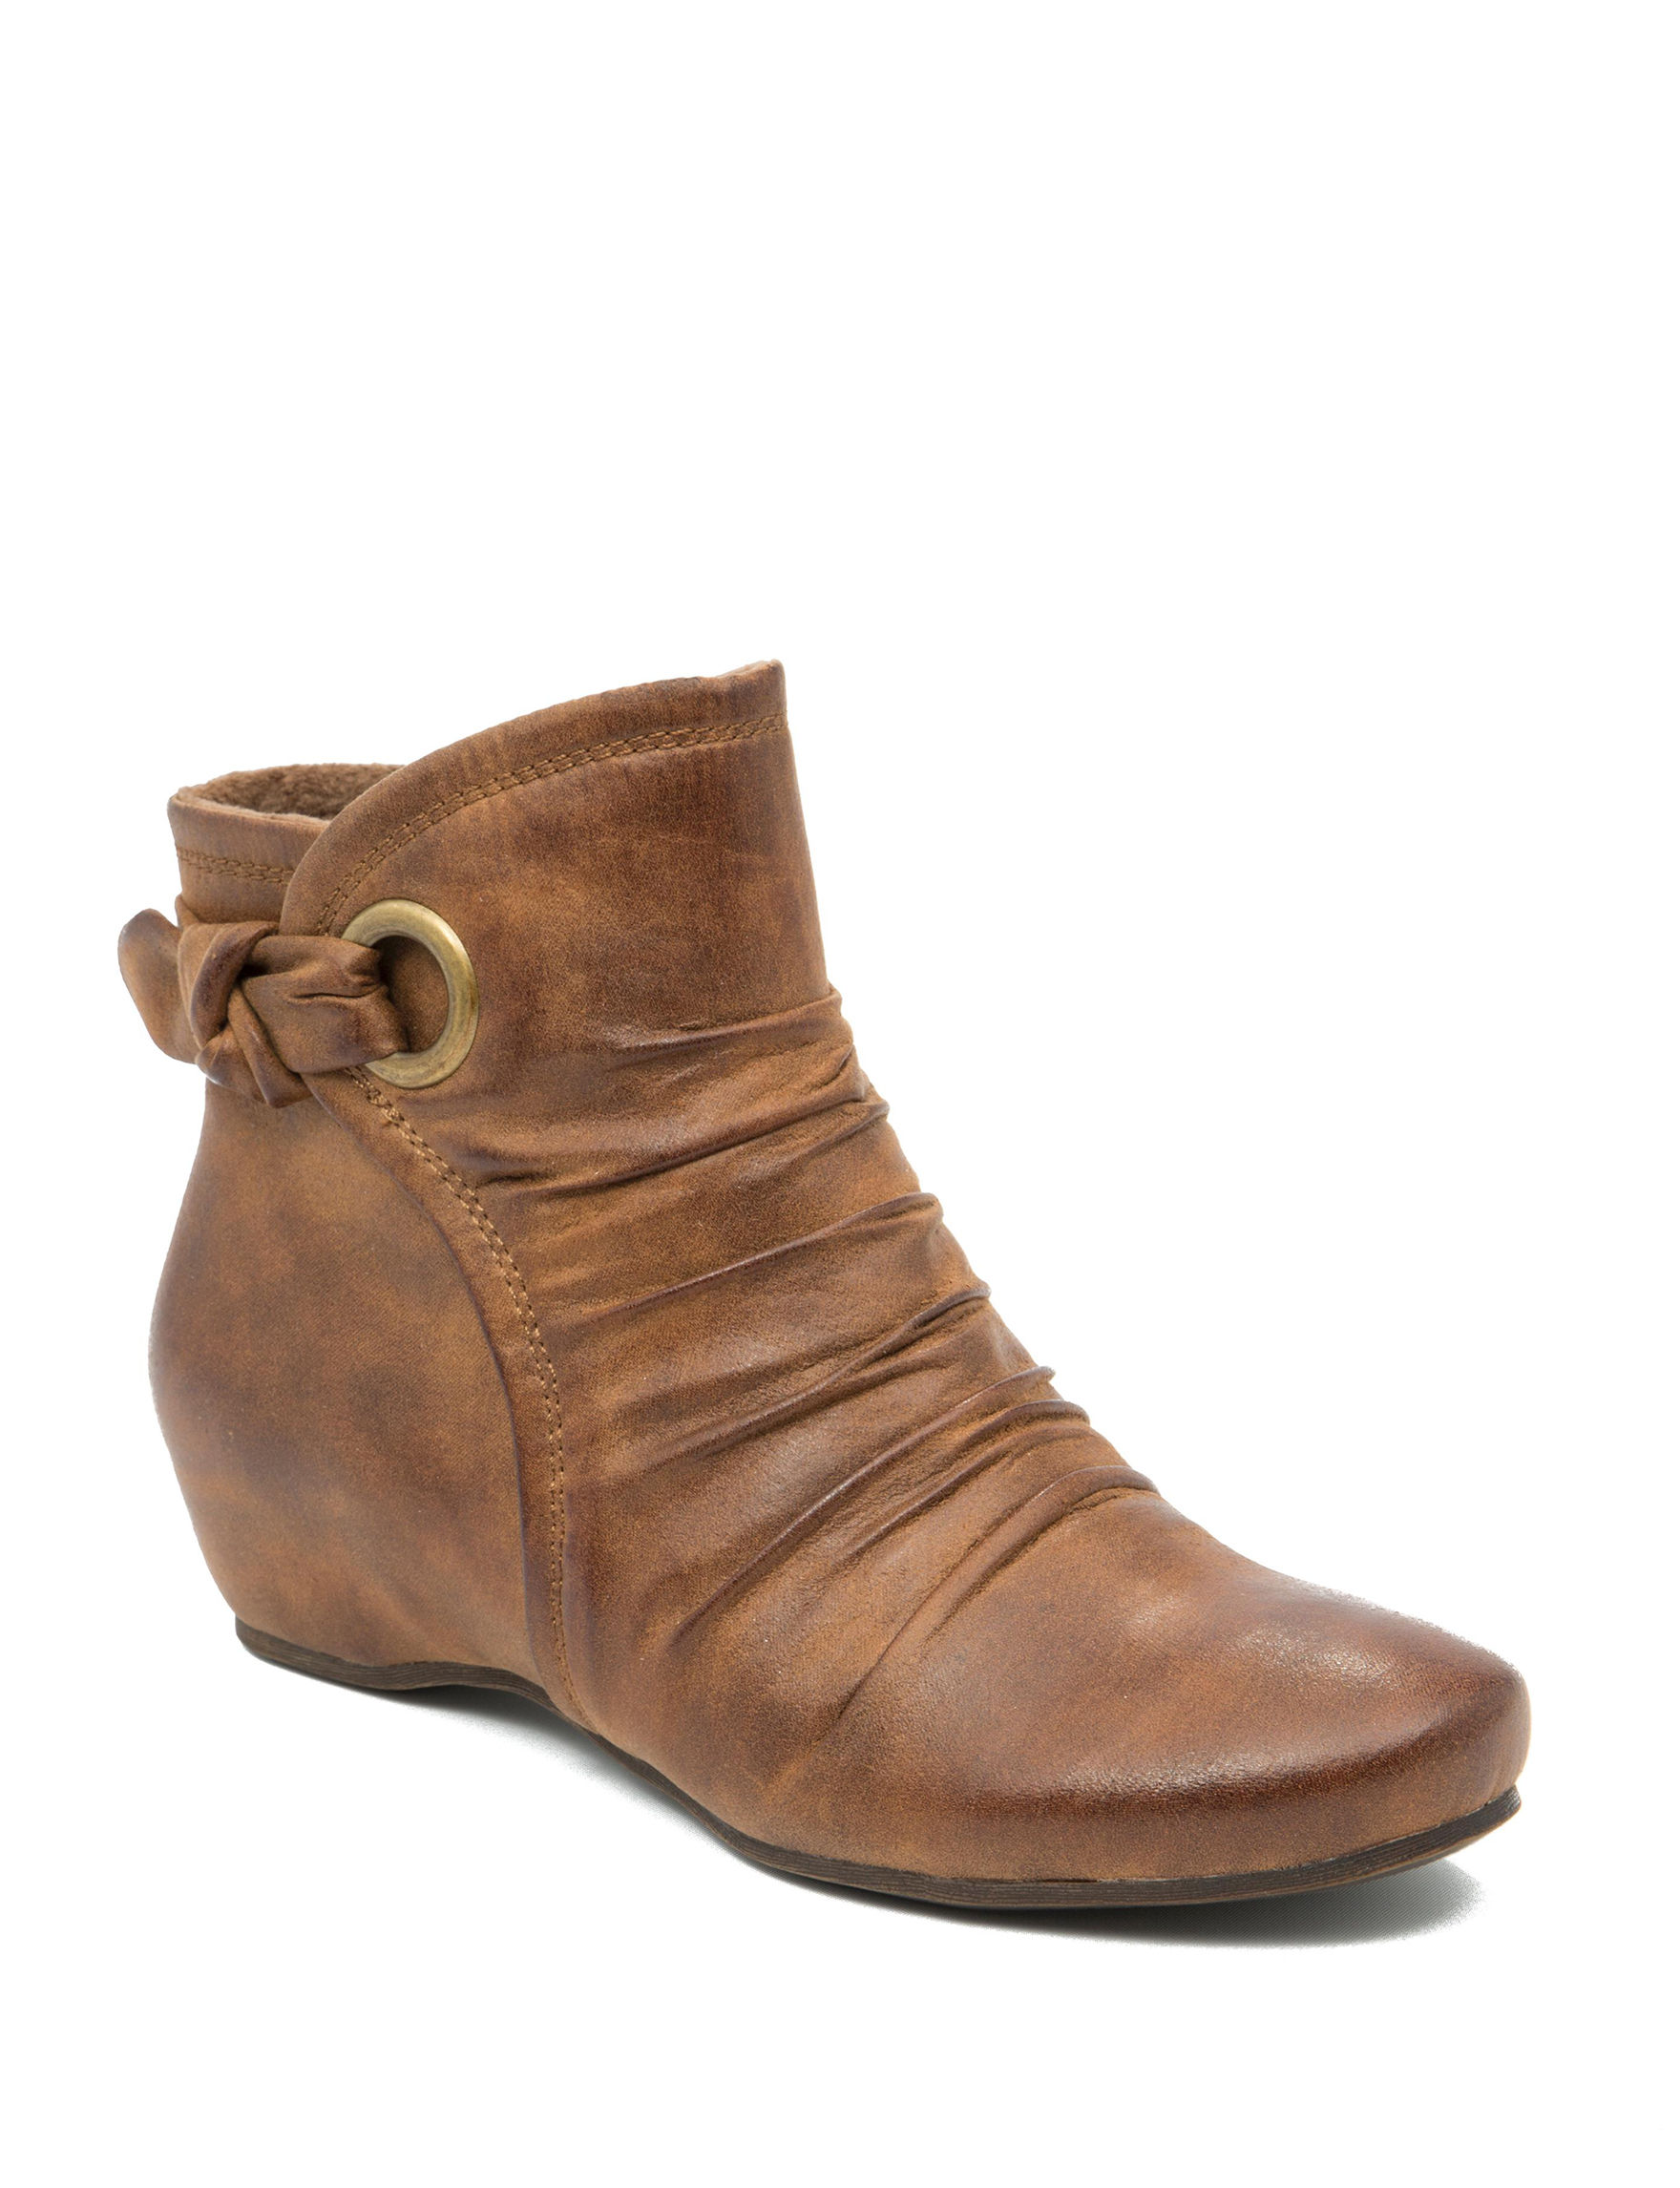 Bare Traps Medium Brown Ankle Boots & Booties Wedge Boots